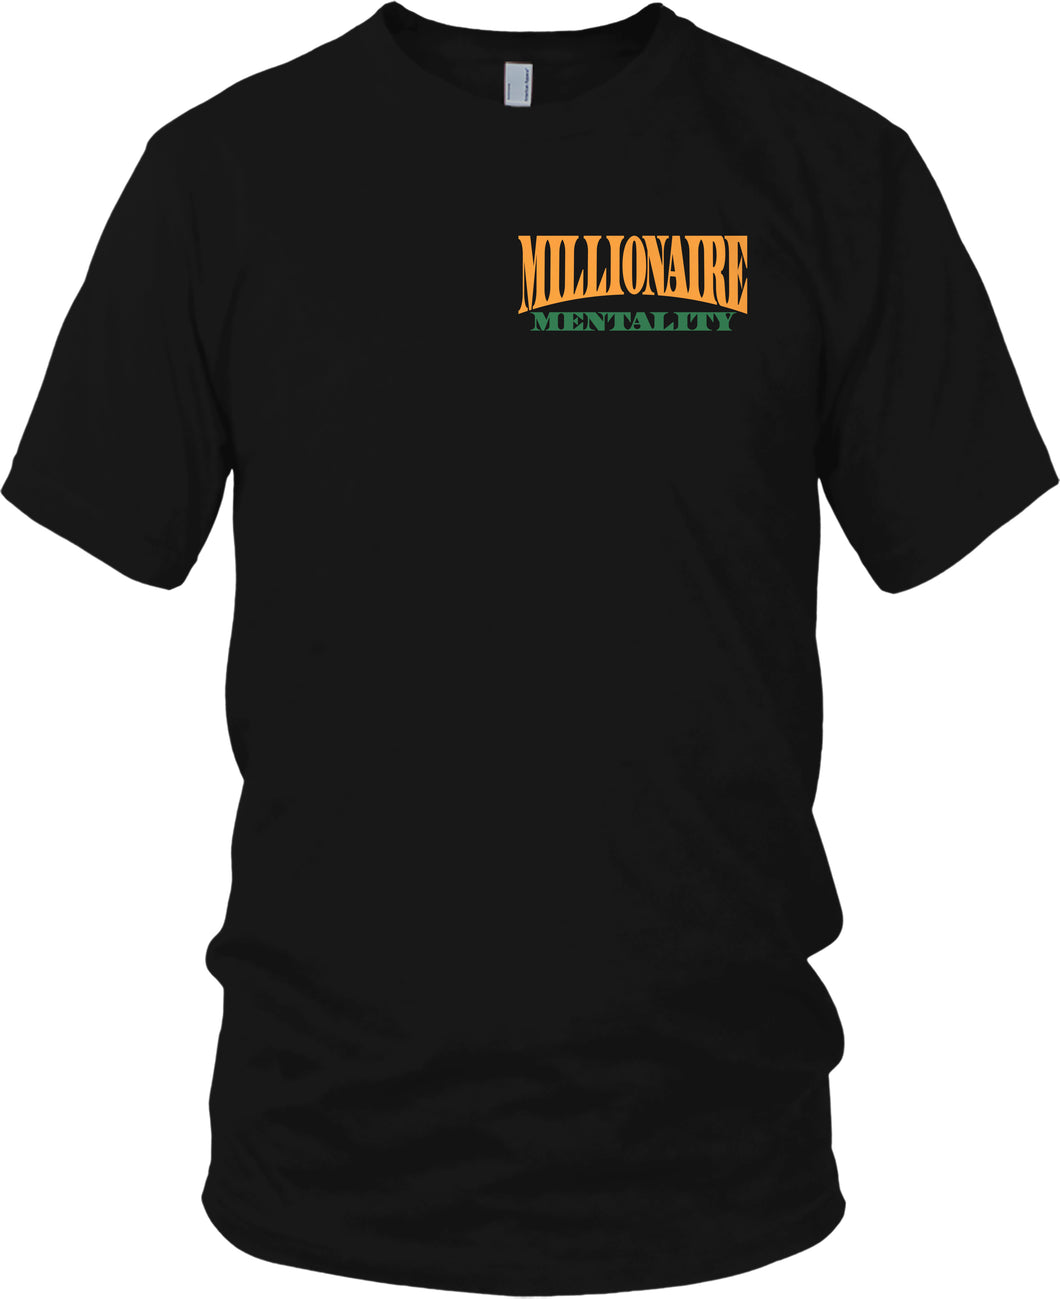 MILLIONAIRE MENTALITY BLACK, GREEN & GOLD T-SHIRT (LIMITED EDITION) FRONT & BACK PRINT